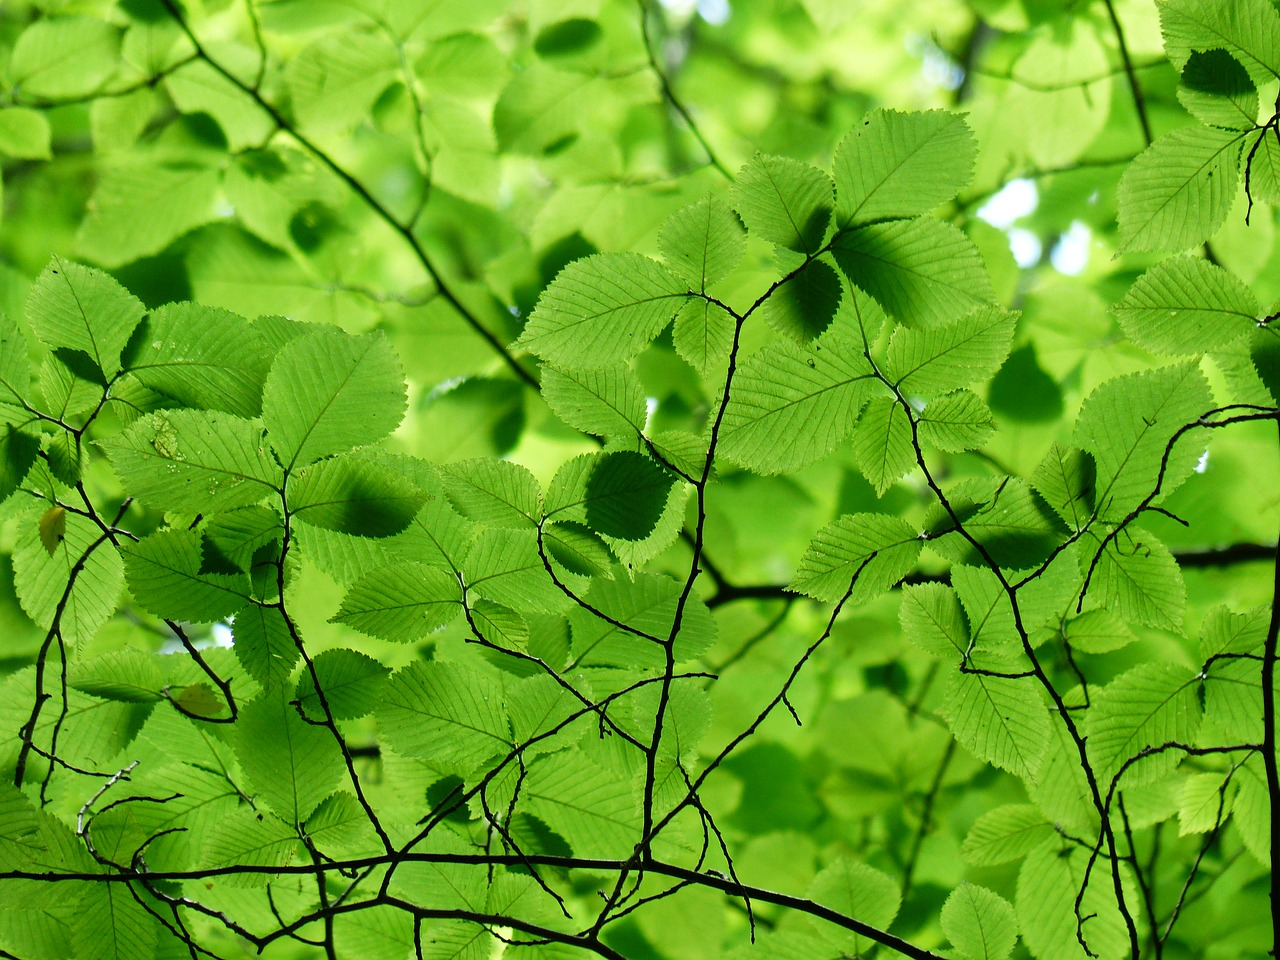 FREE leaf Stock Photos from PikWizard